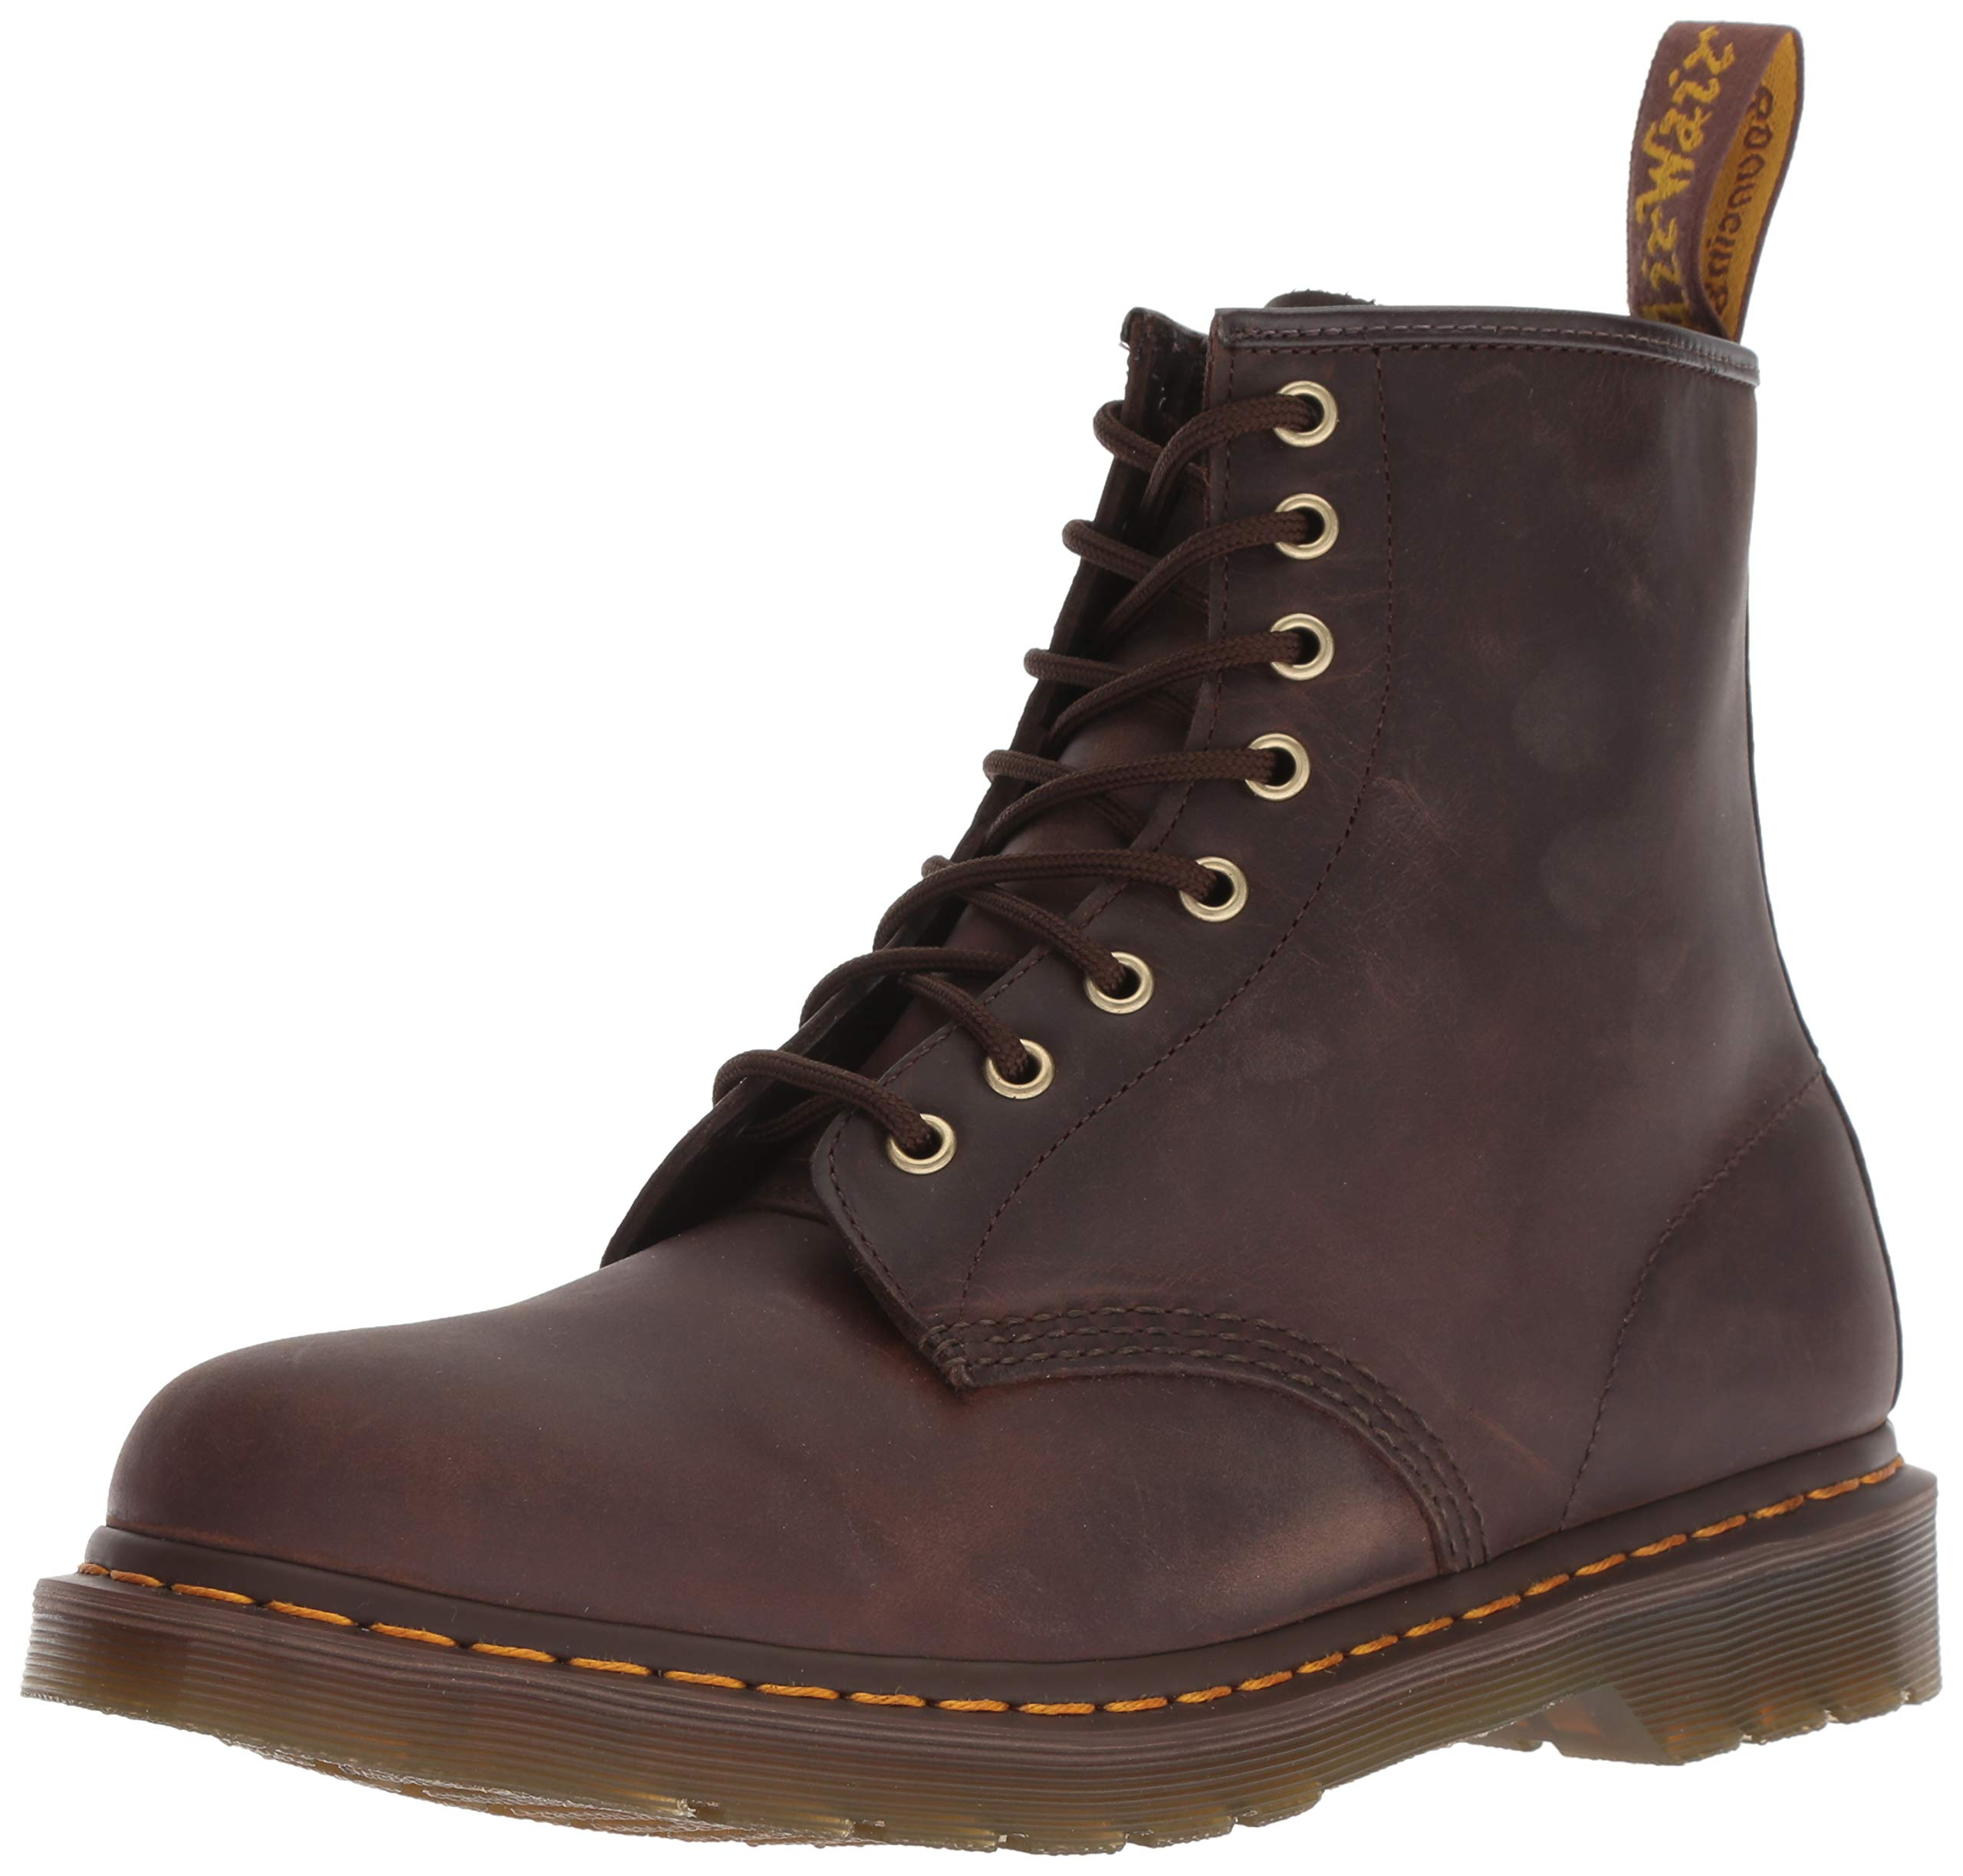 Dr. Martens Men's 1460, Gaucho Crazy Horse, 8 M UK (9 US) by Dr. Martens